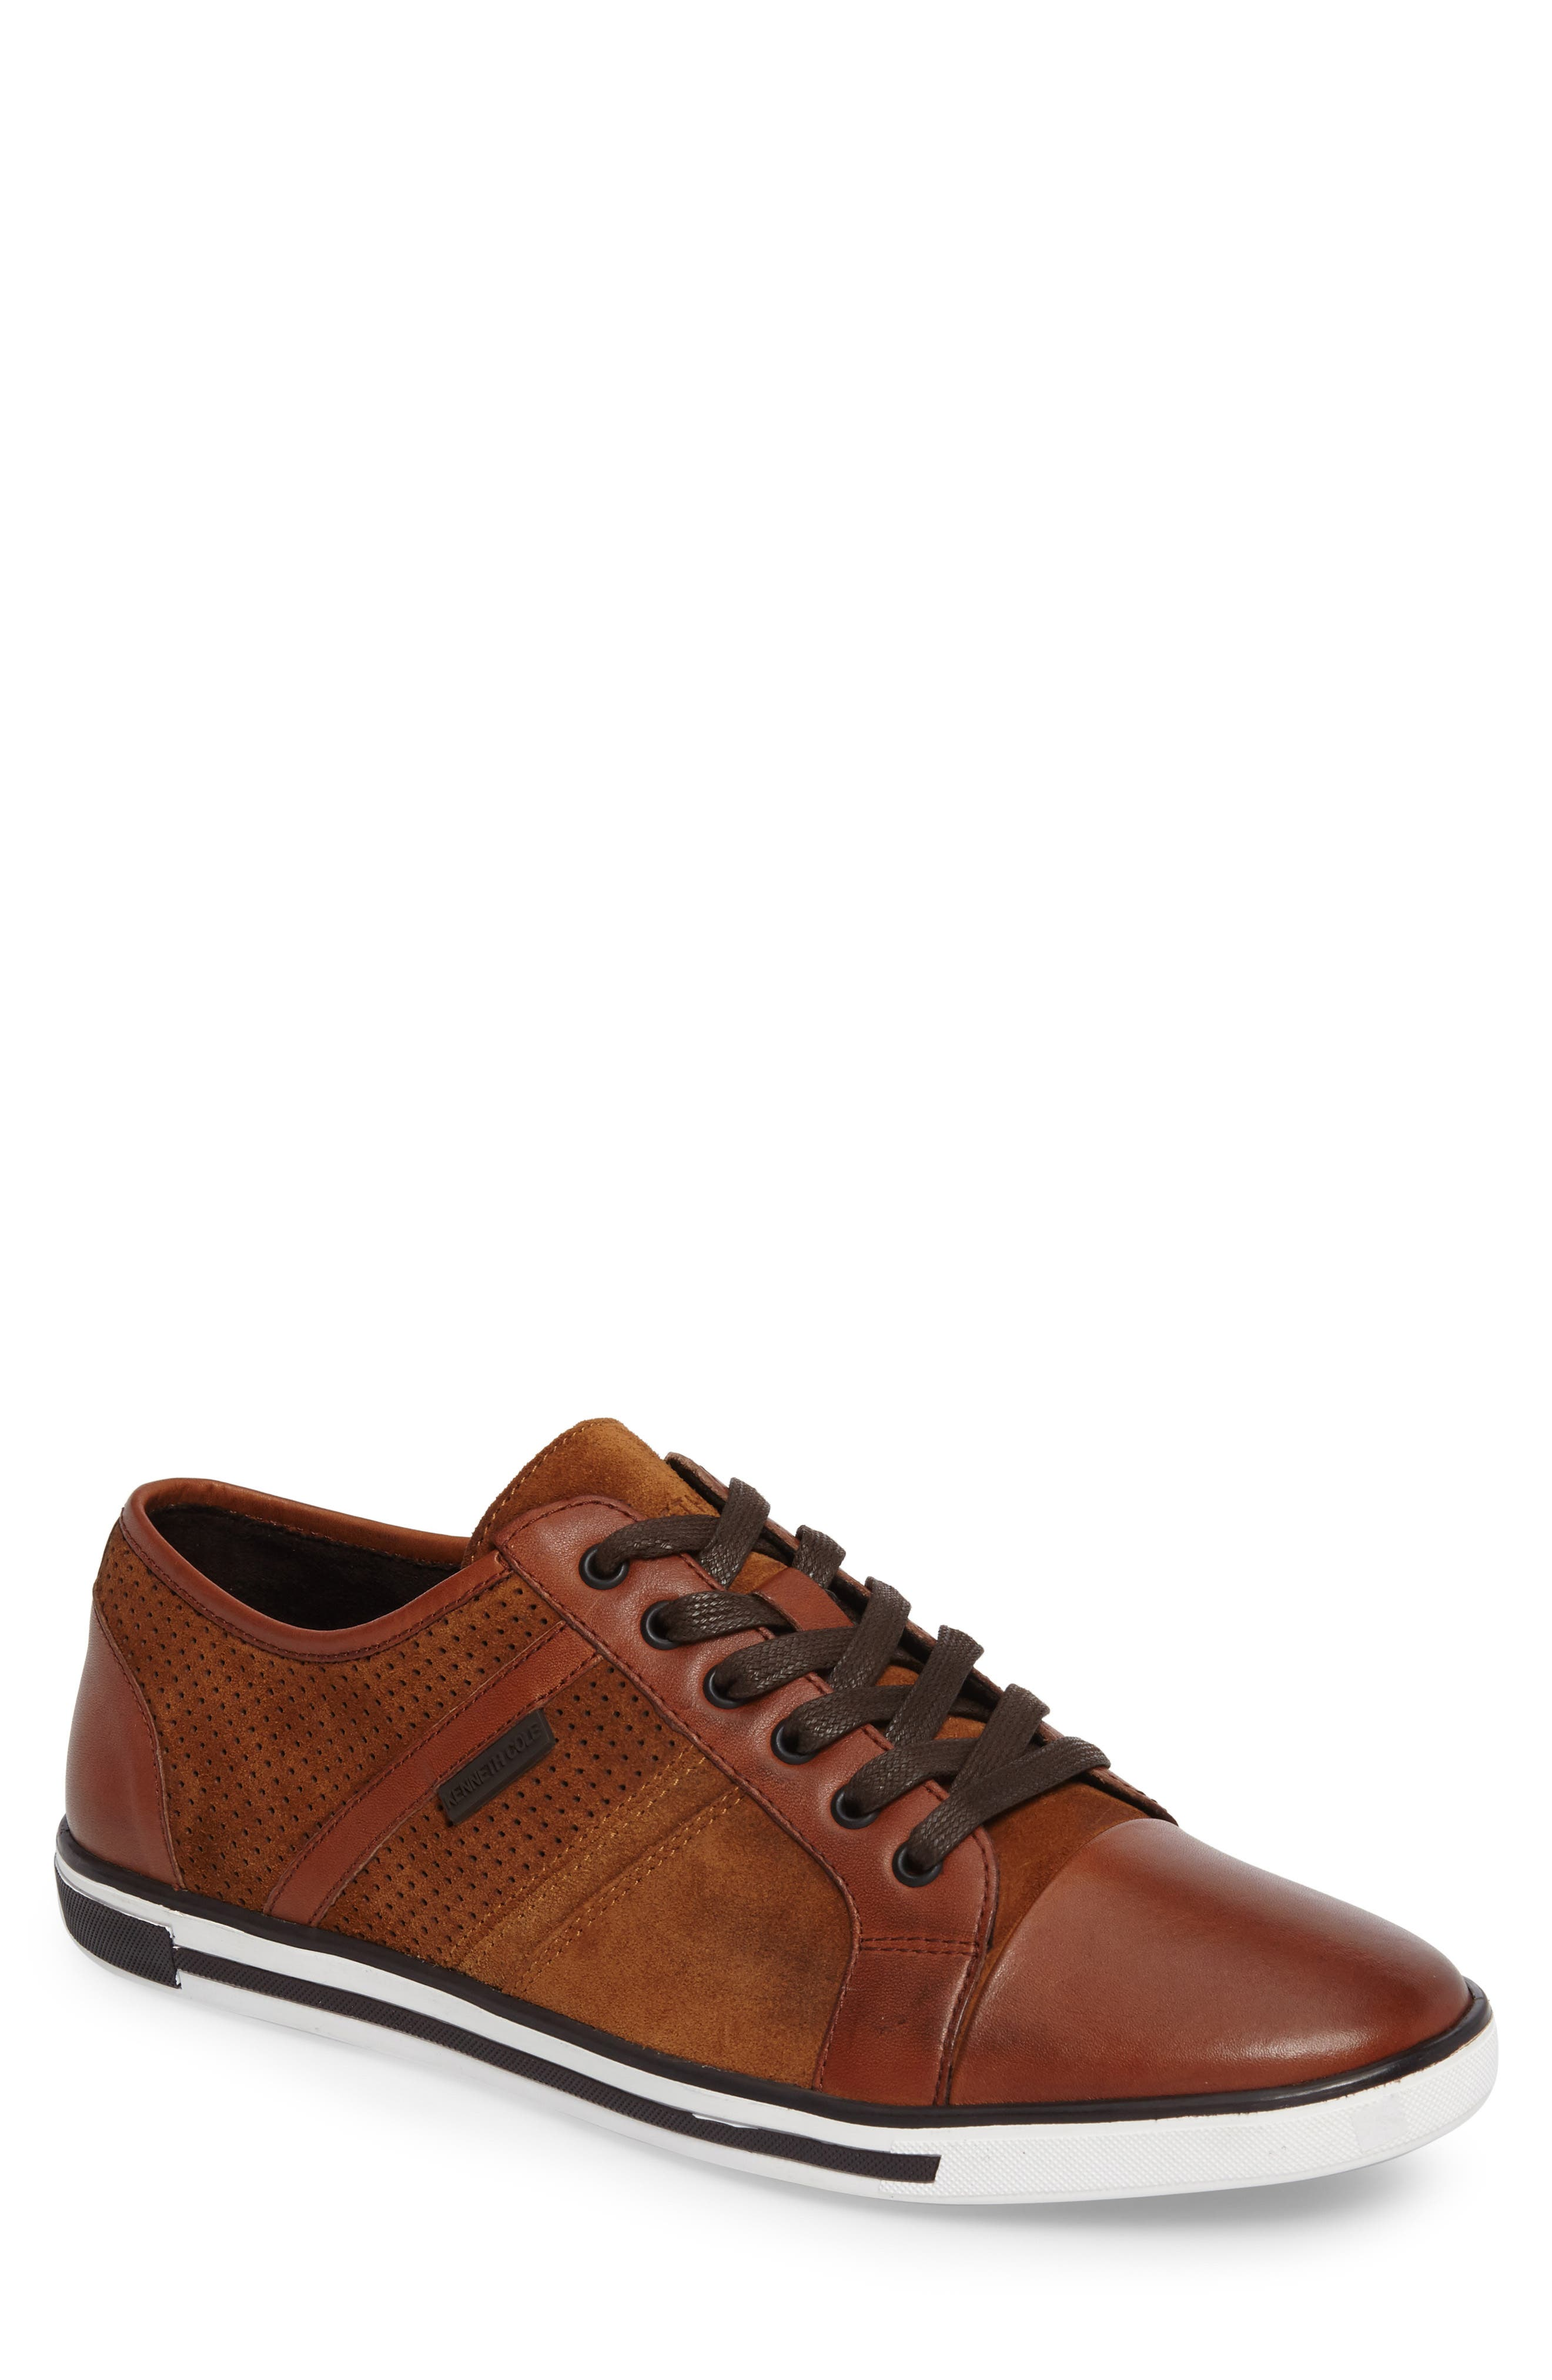 Main Image - Kenneth Cole New York Initial Step Sneaker (Men)